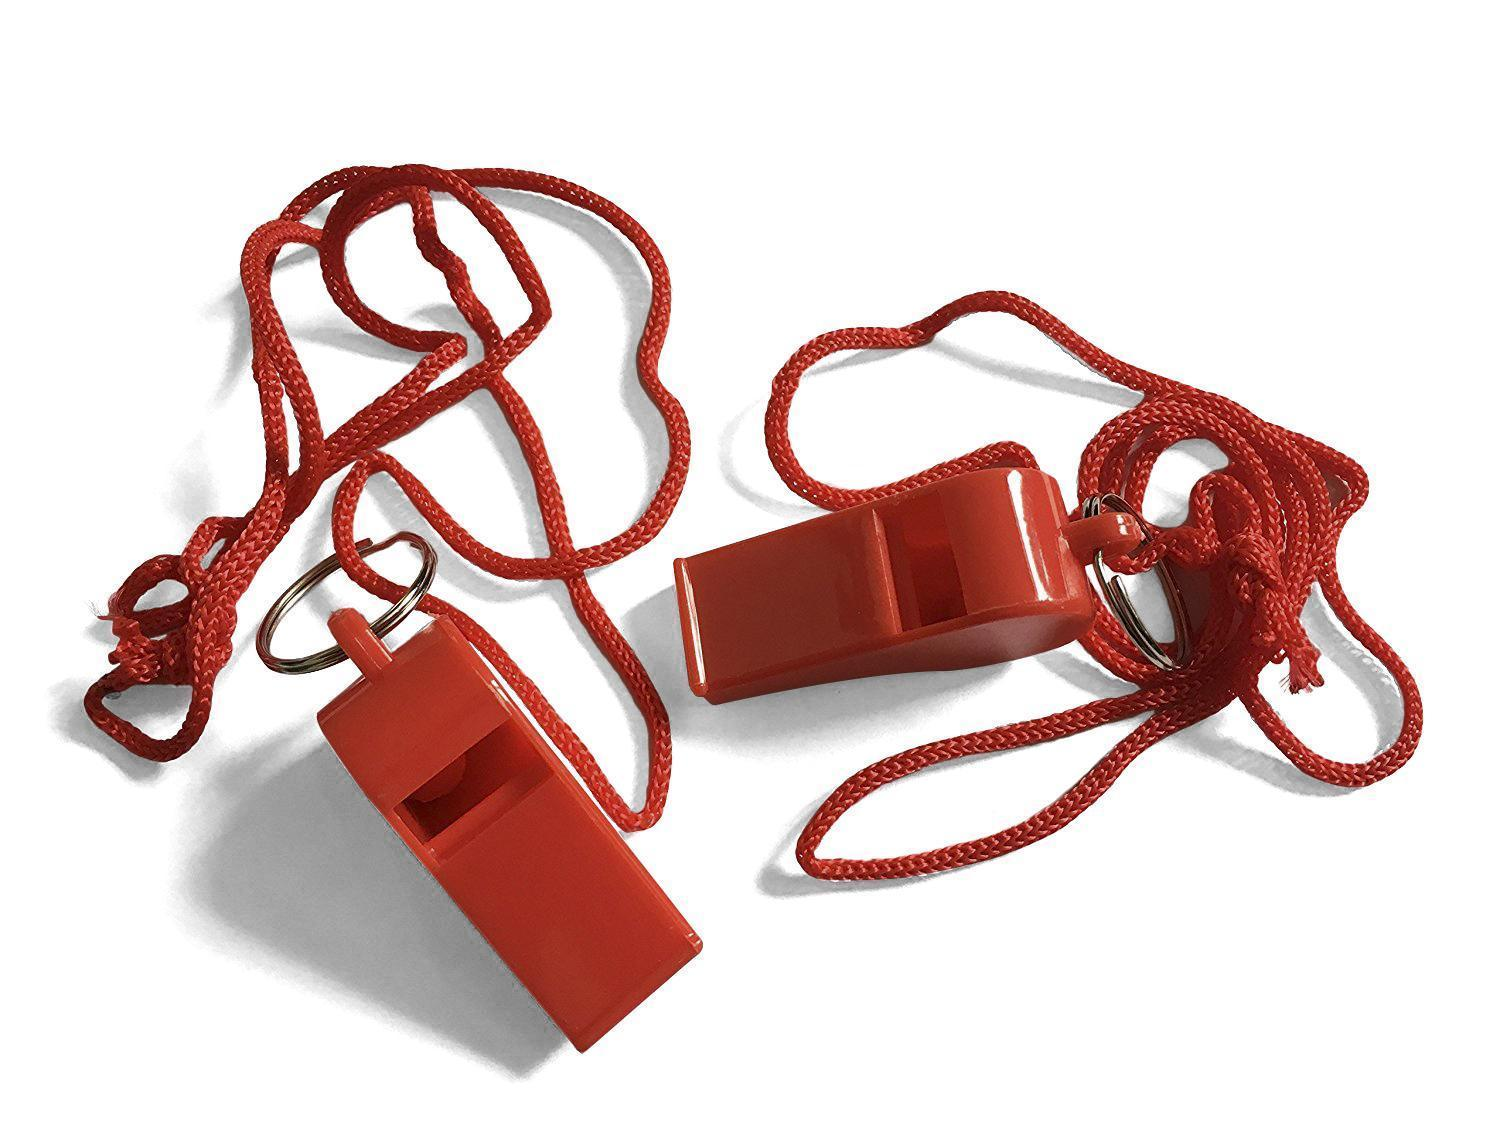 Bag of 100 Red Plastic Whistles with Lanyard Neck Cord